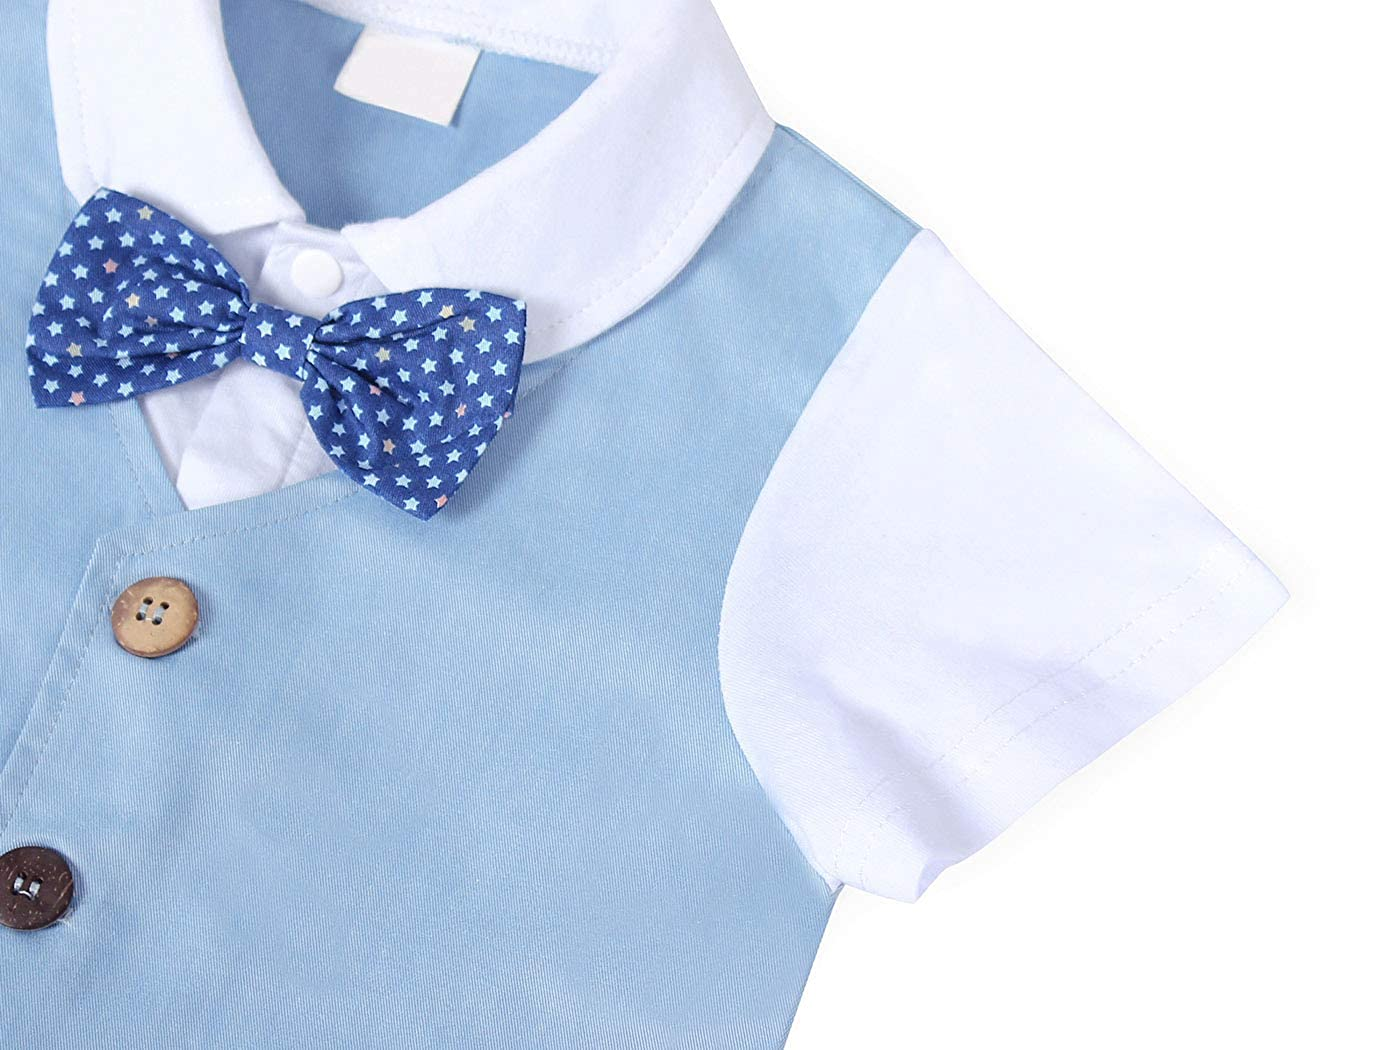 MetCuento Baby Boys Clothes Suspenders Pants Set Bow Tie Shirts 2 Piece Gentleman Summer Outfit